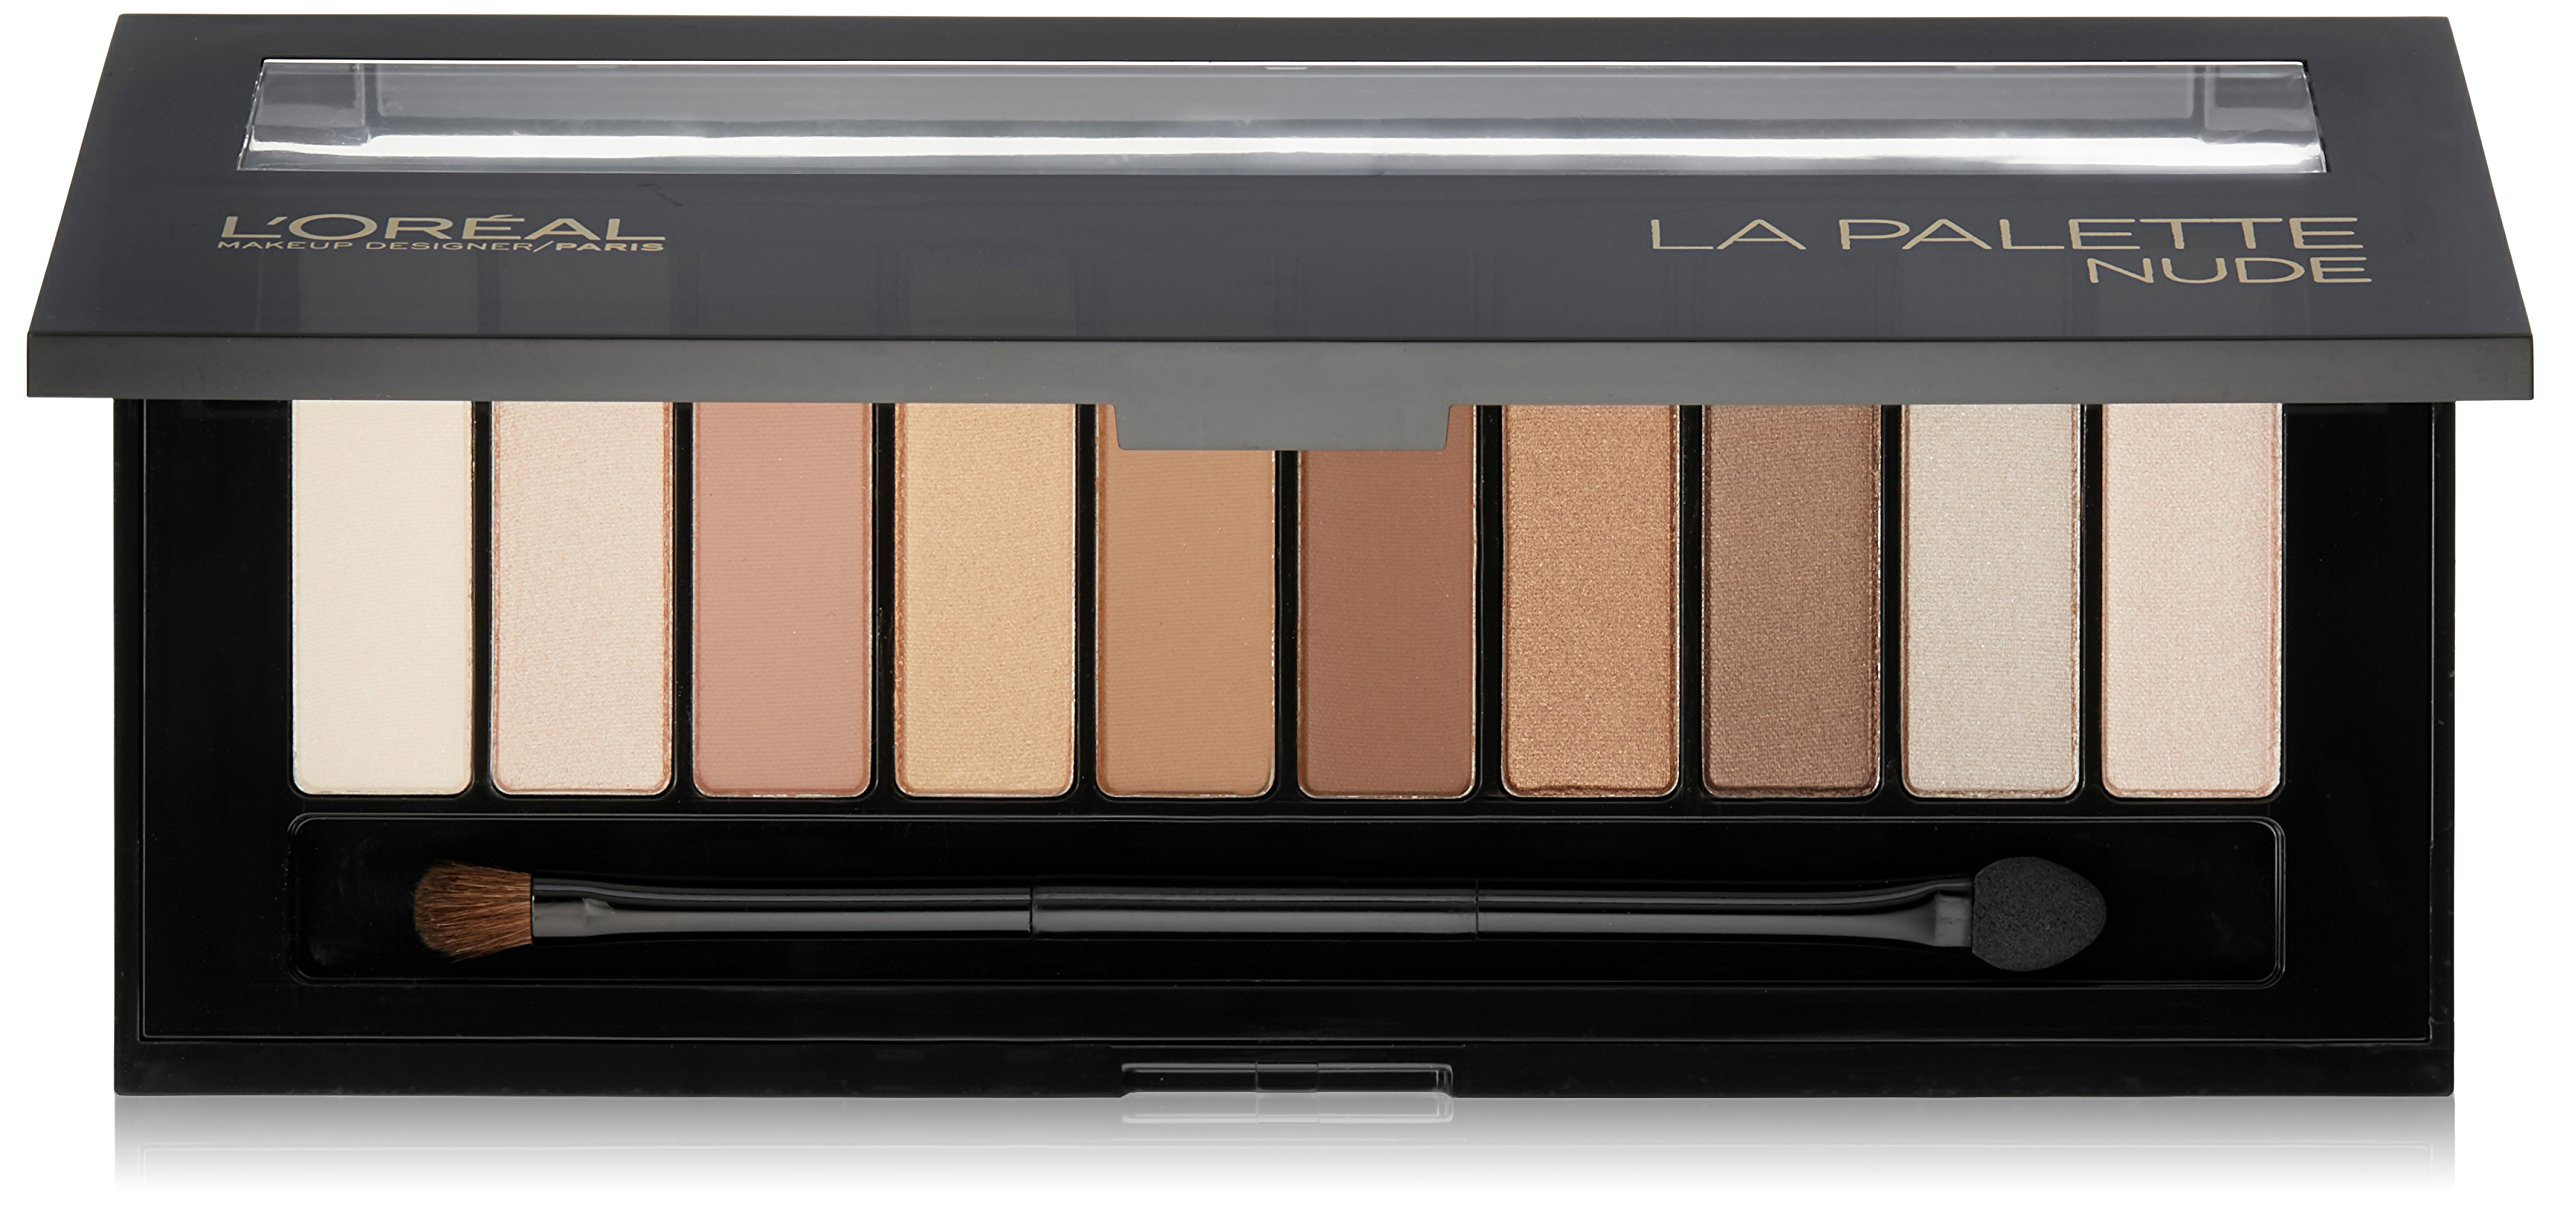 L'Oréal Paris Makeup Colour Riche Eye 'La Palette Nude' Eye Shadow Palette with Brush, 111 Nude, 0.62 oz.